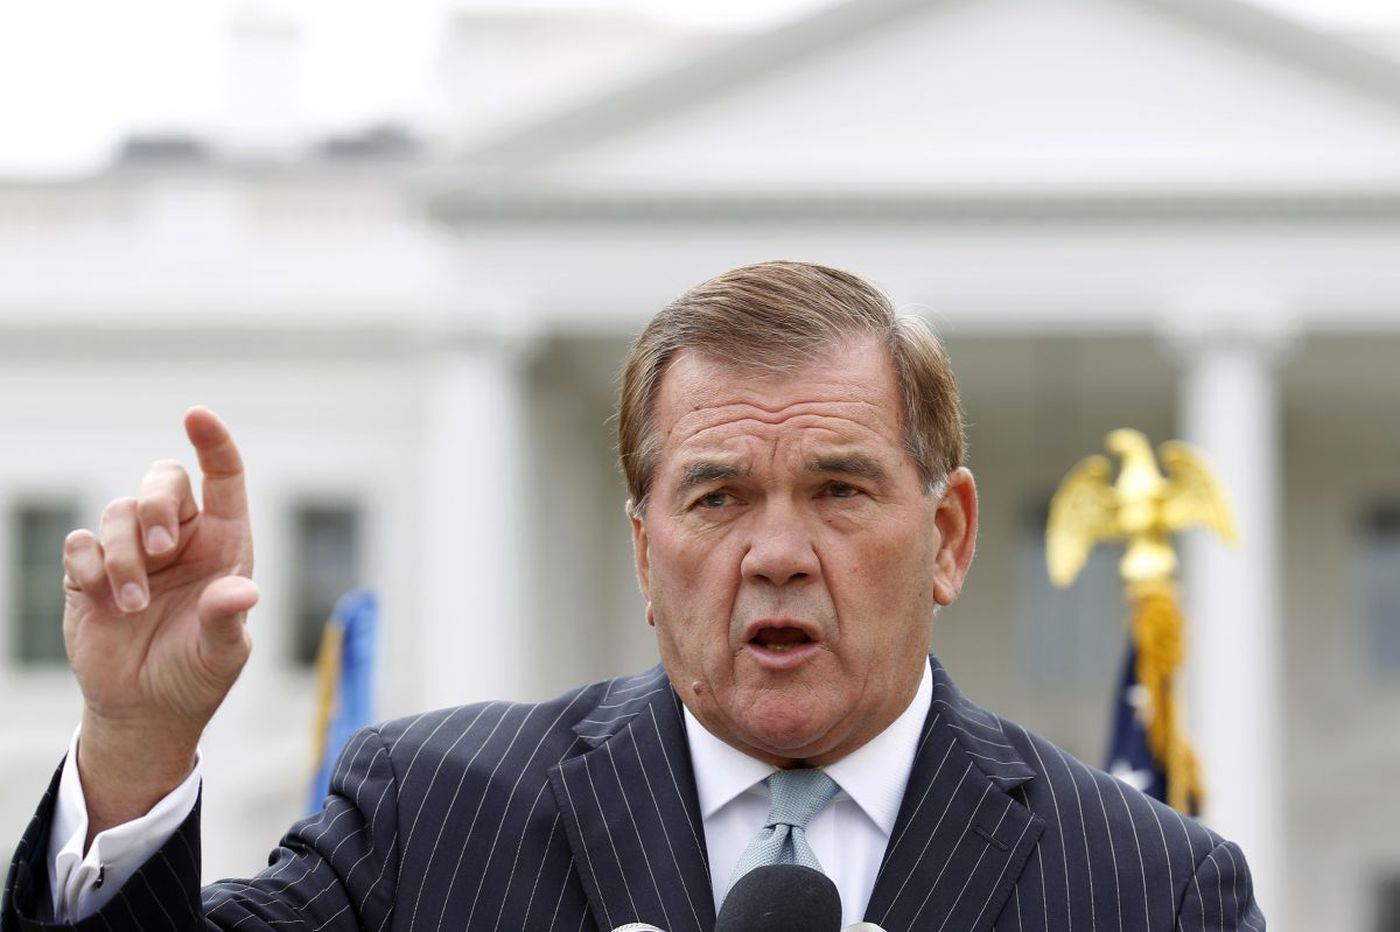 Former Pa. Gov. and U.S. Homeland Security Secretary Tom Ridge in critical condition in Texas hospital